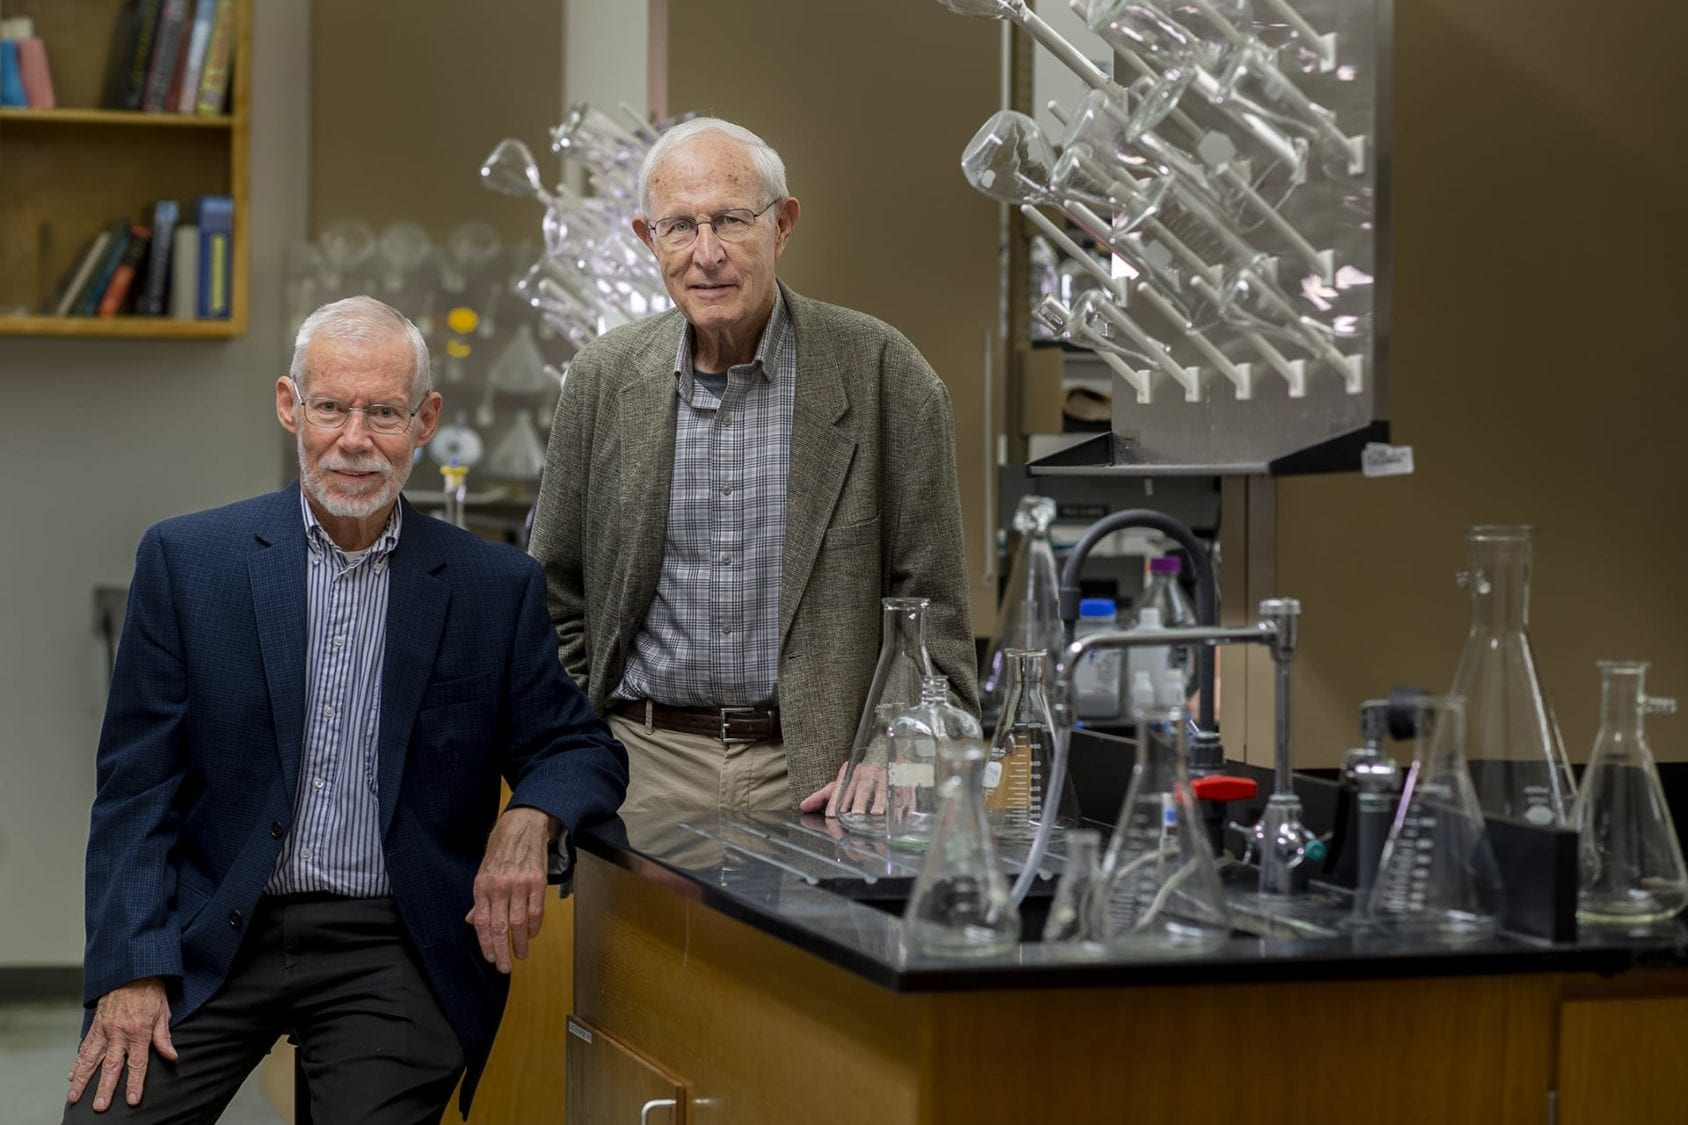 Two older white males in lab